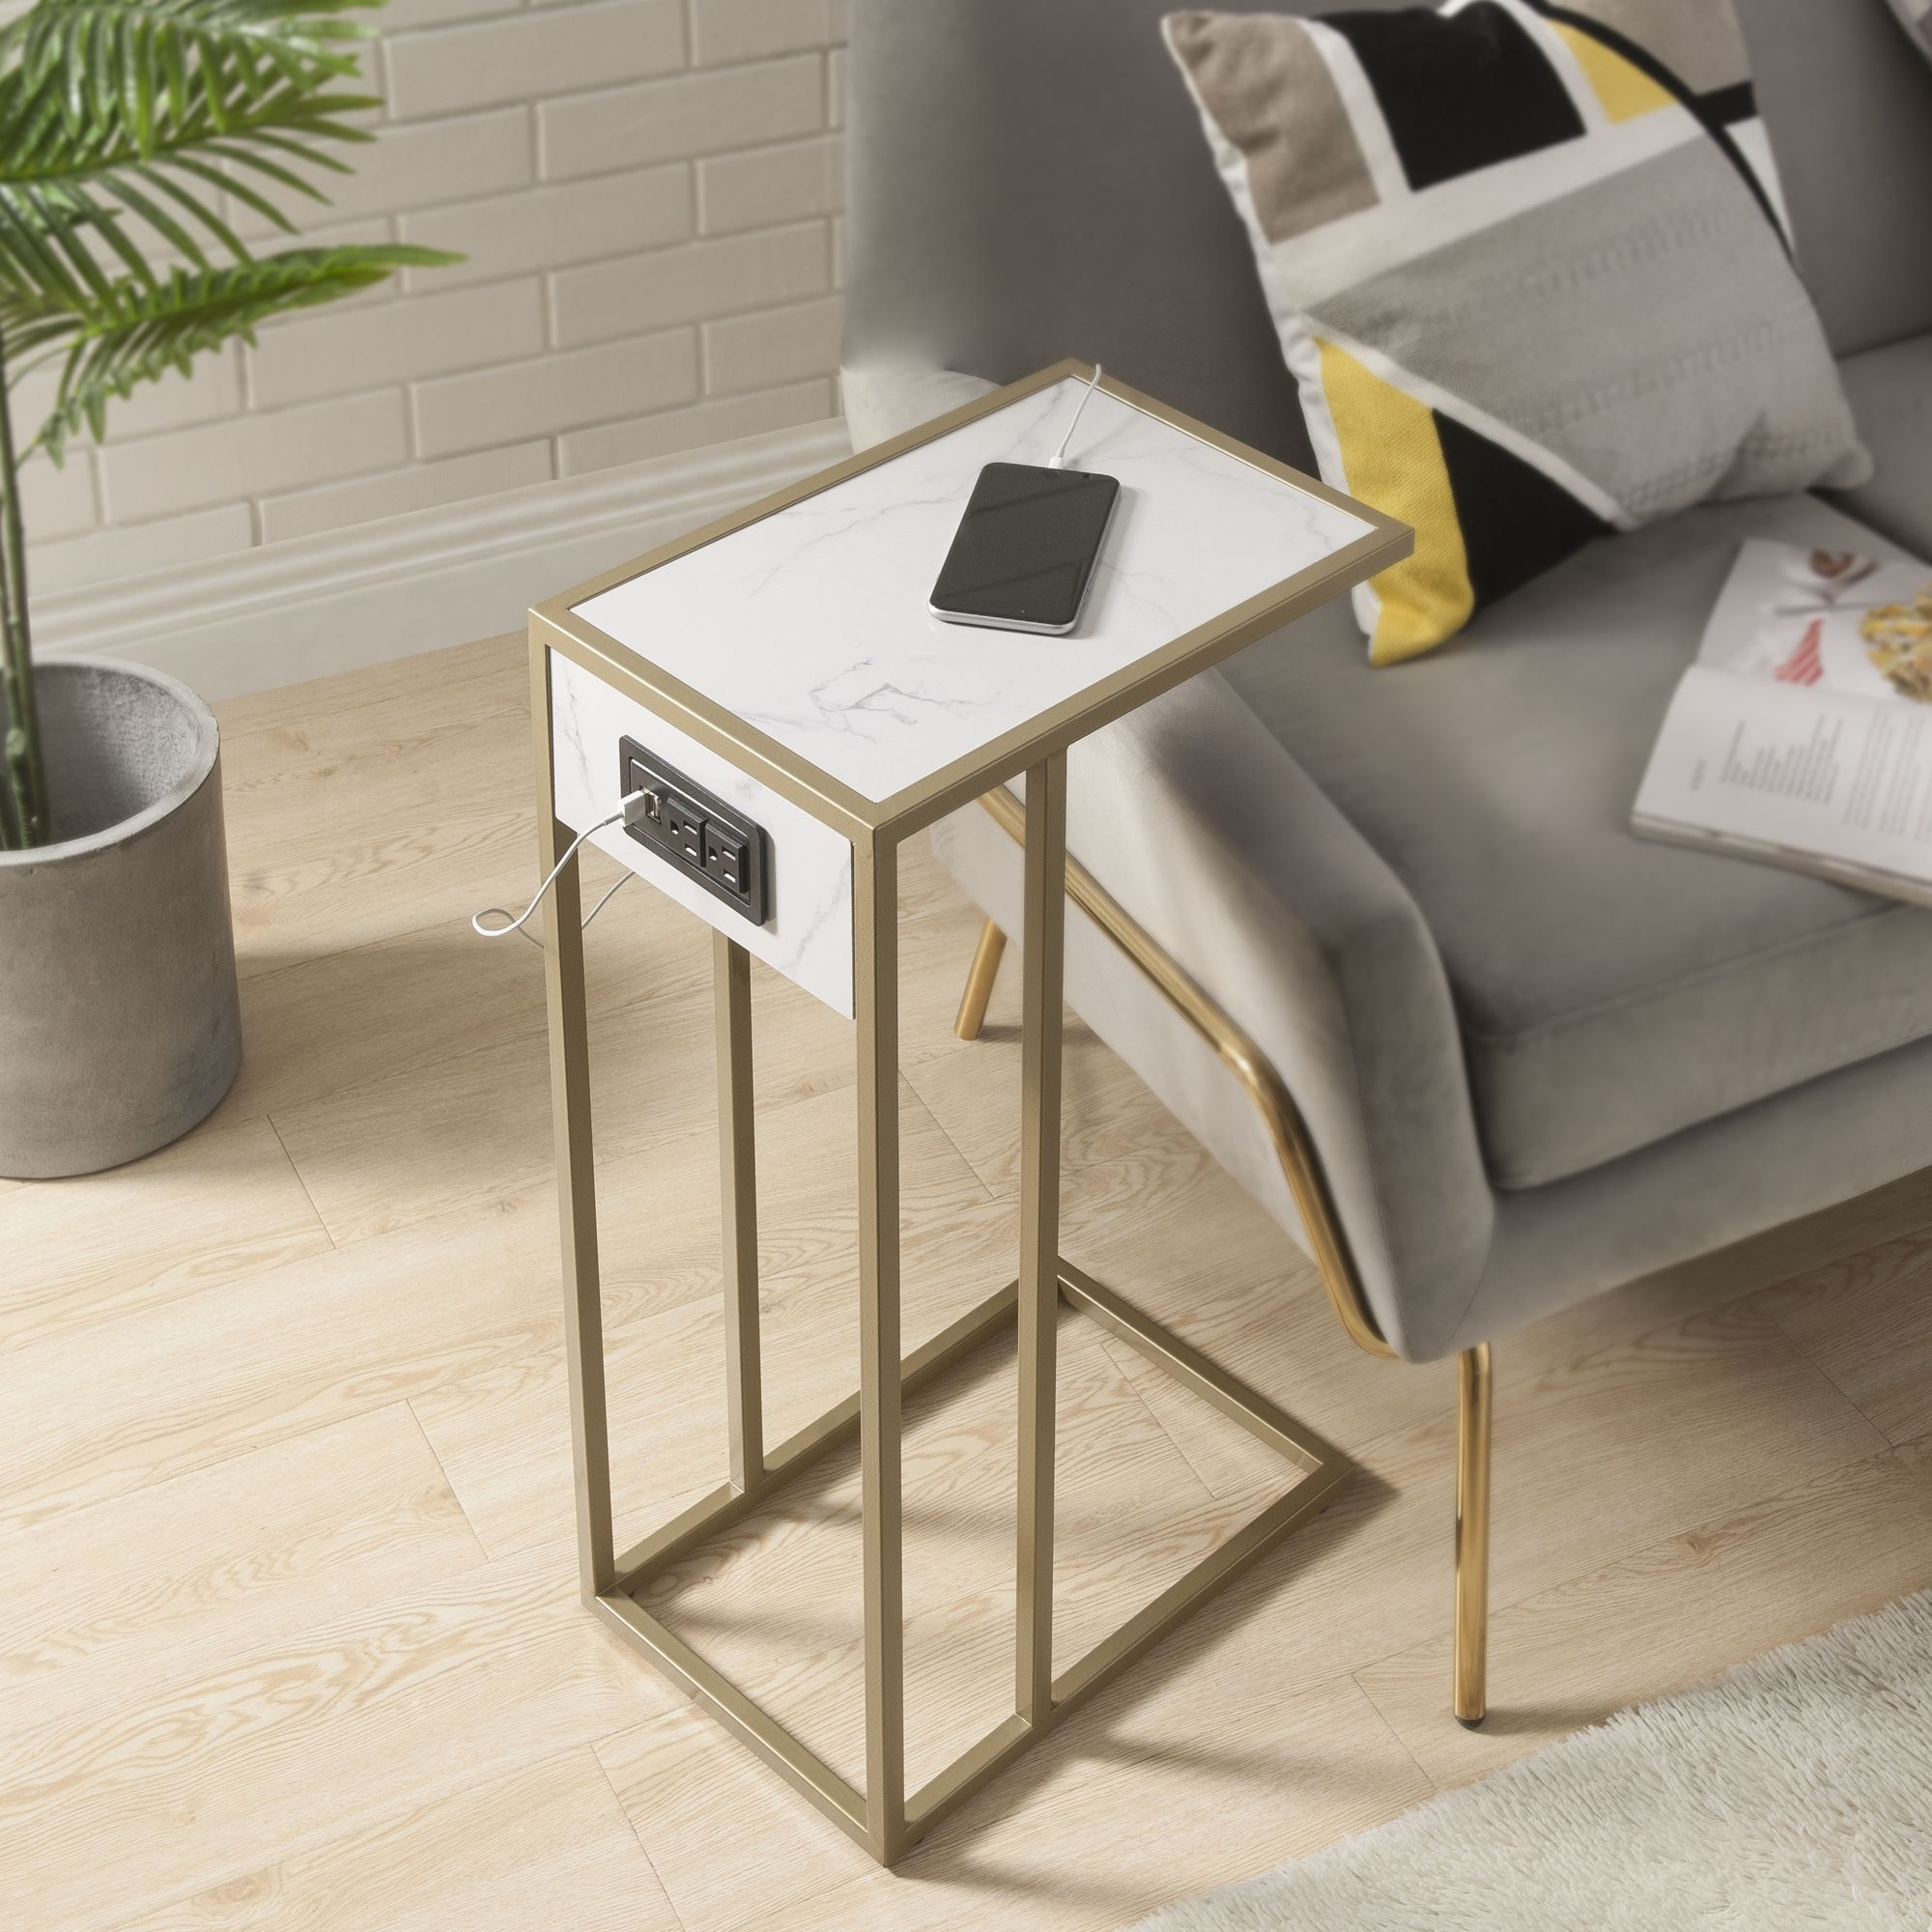 Home Modern End Tables Dorm Room Styles End Tables